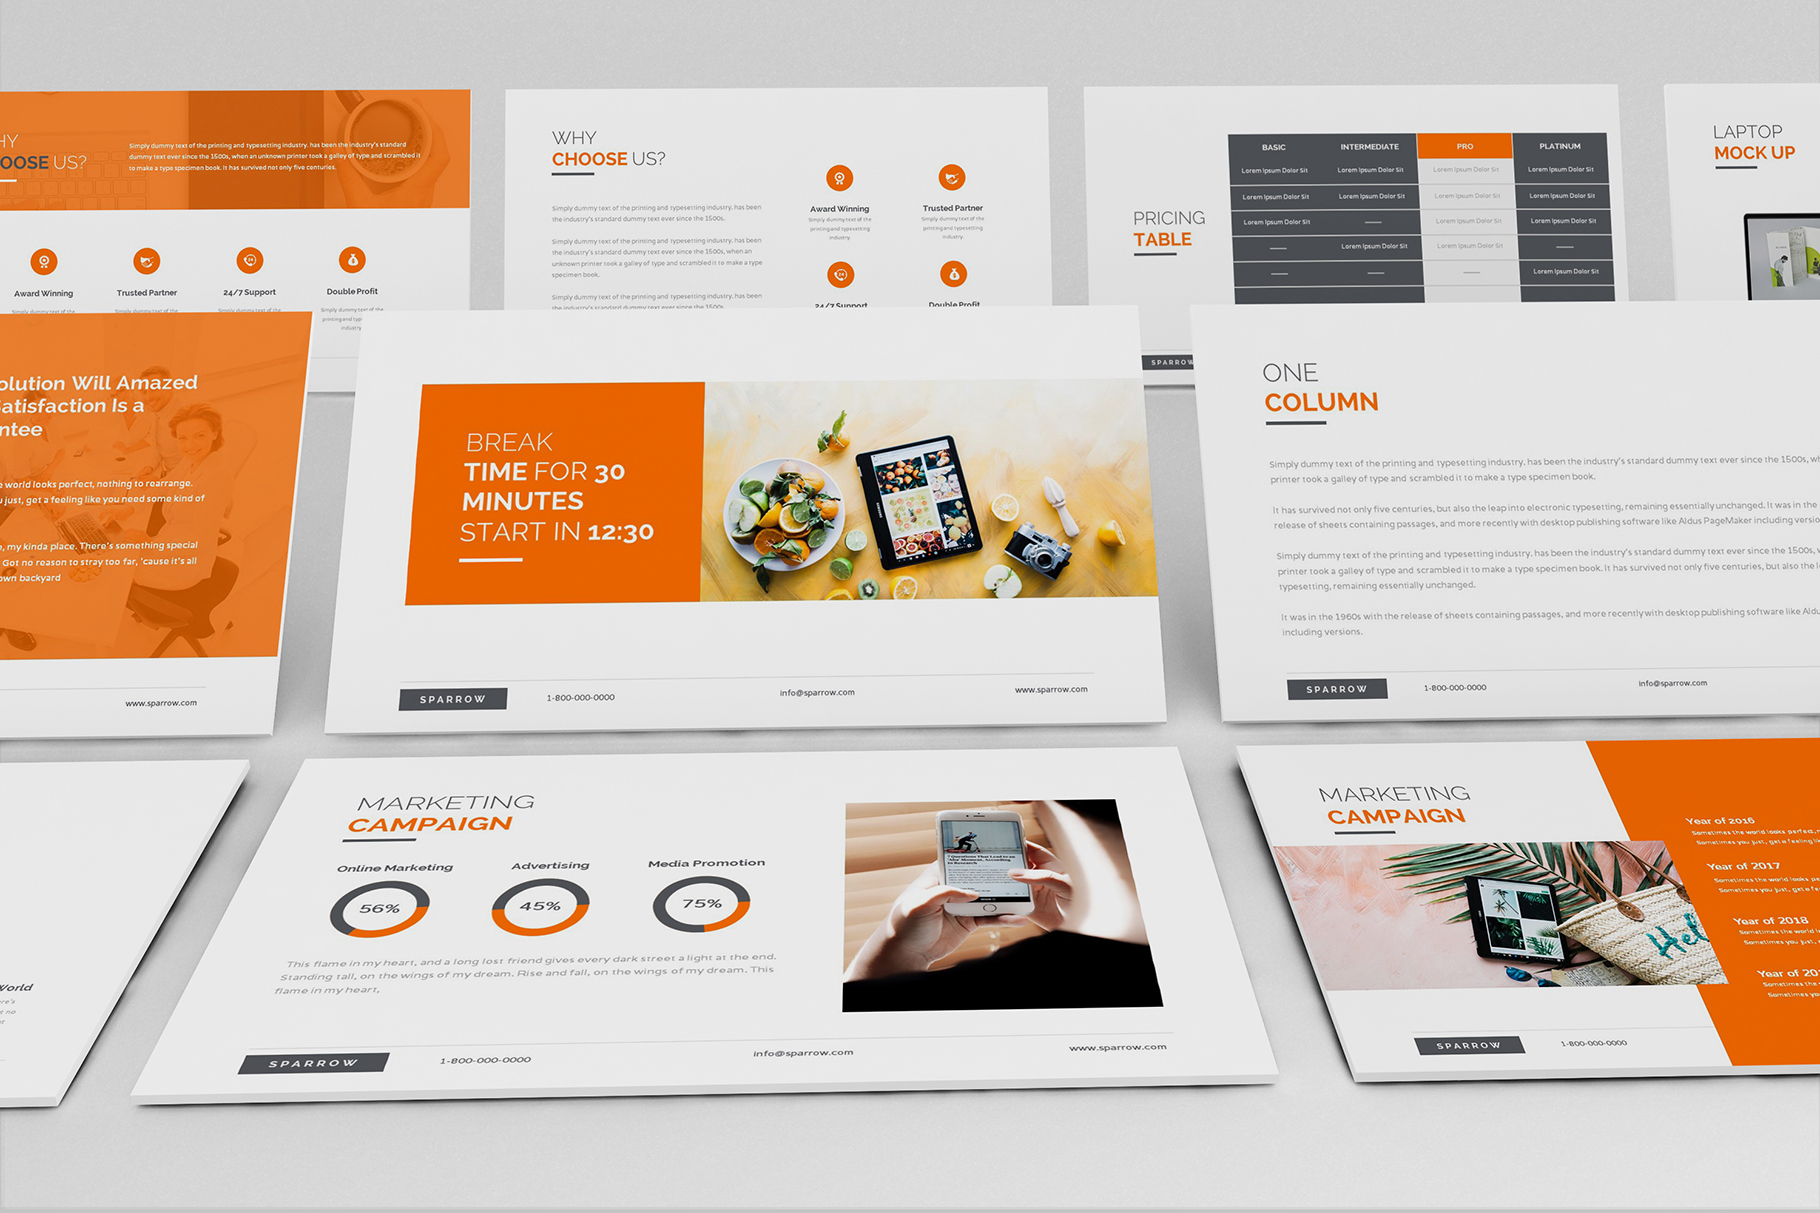 Sparrow - Creative Agency Powerpoint example image 5